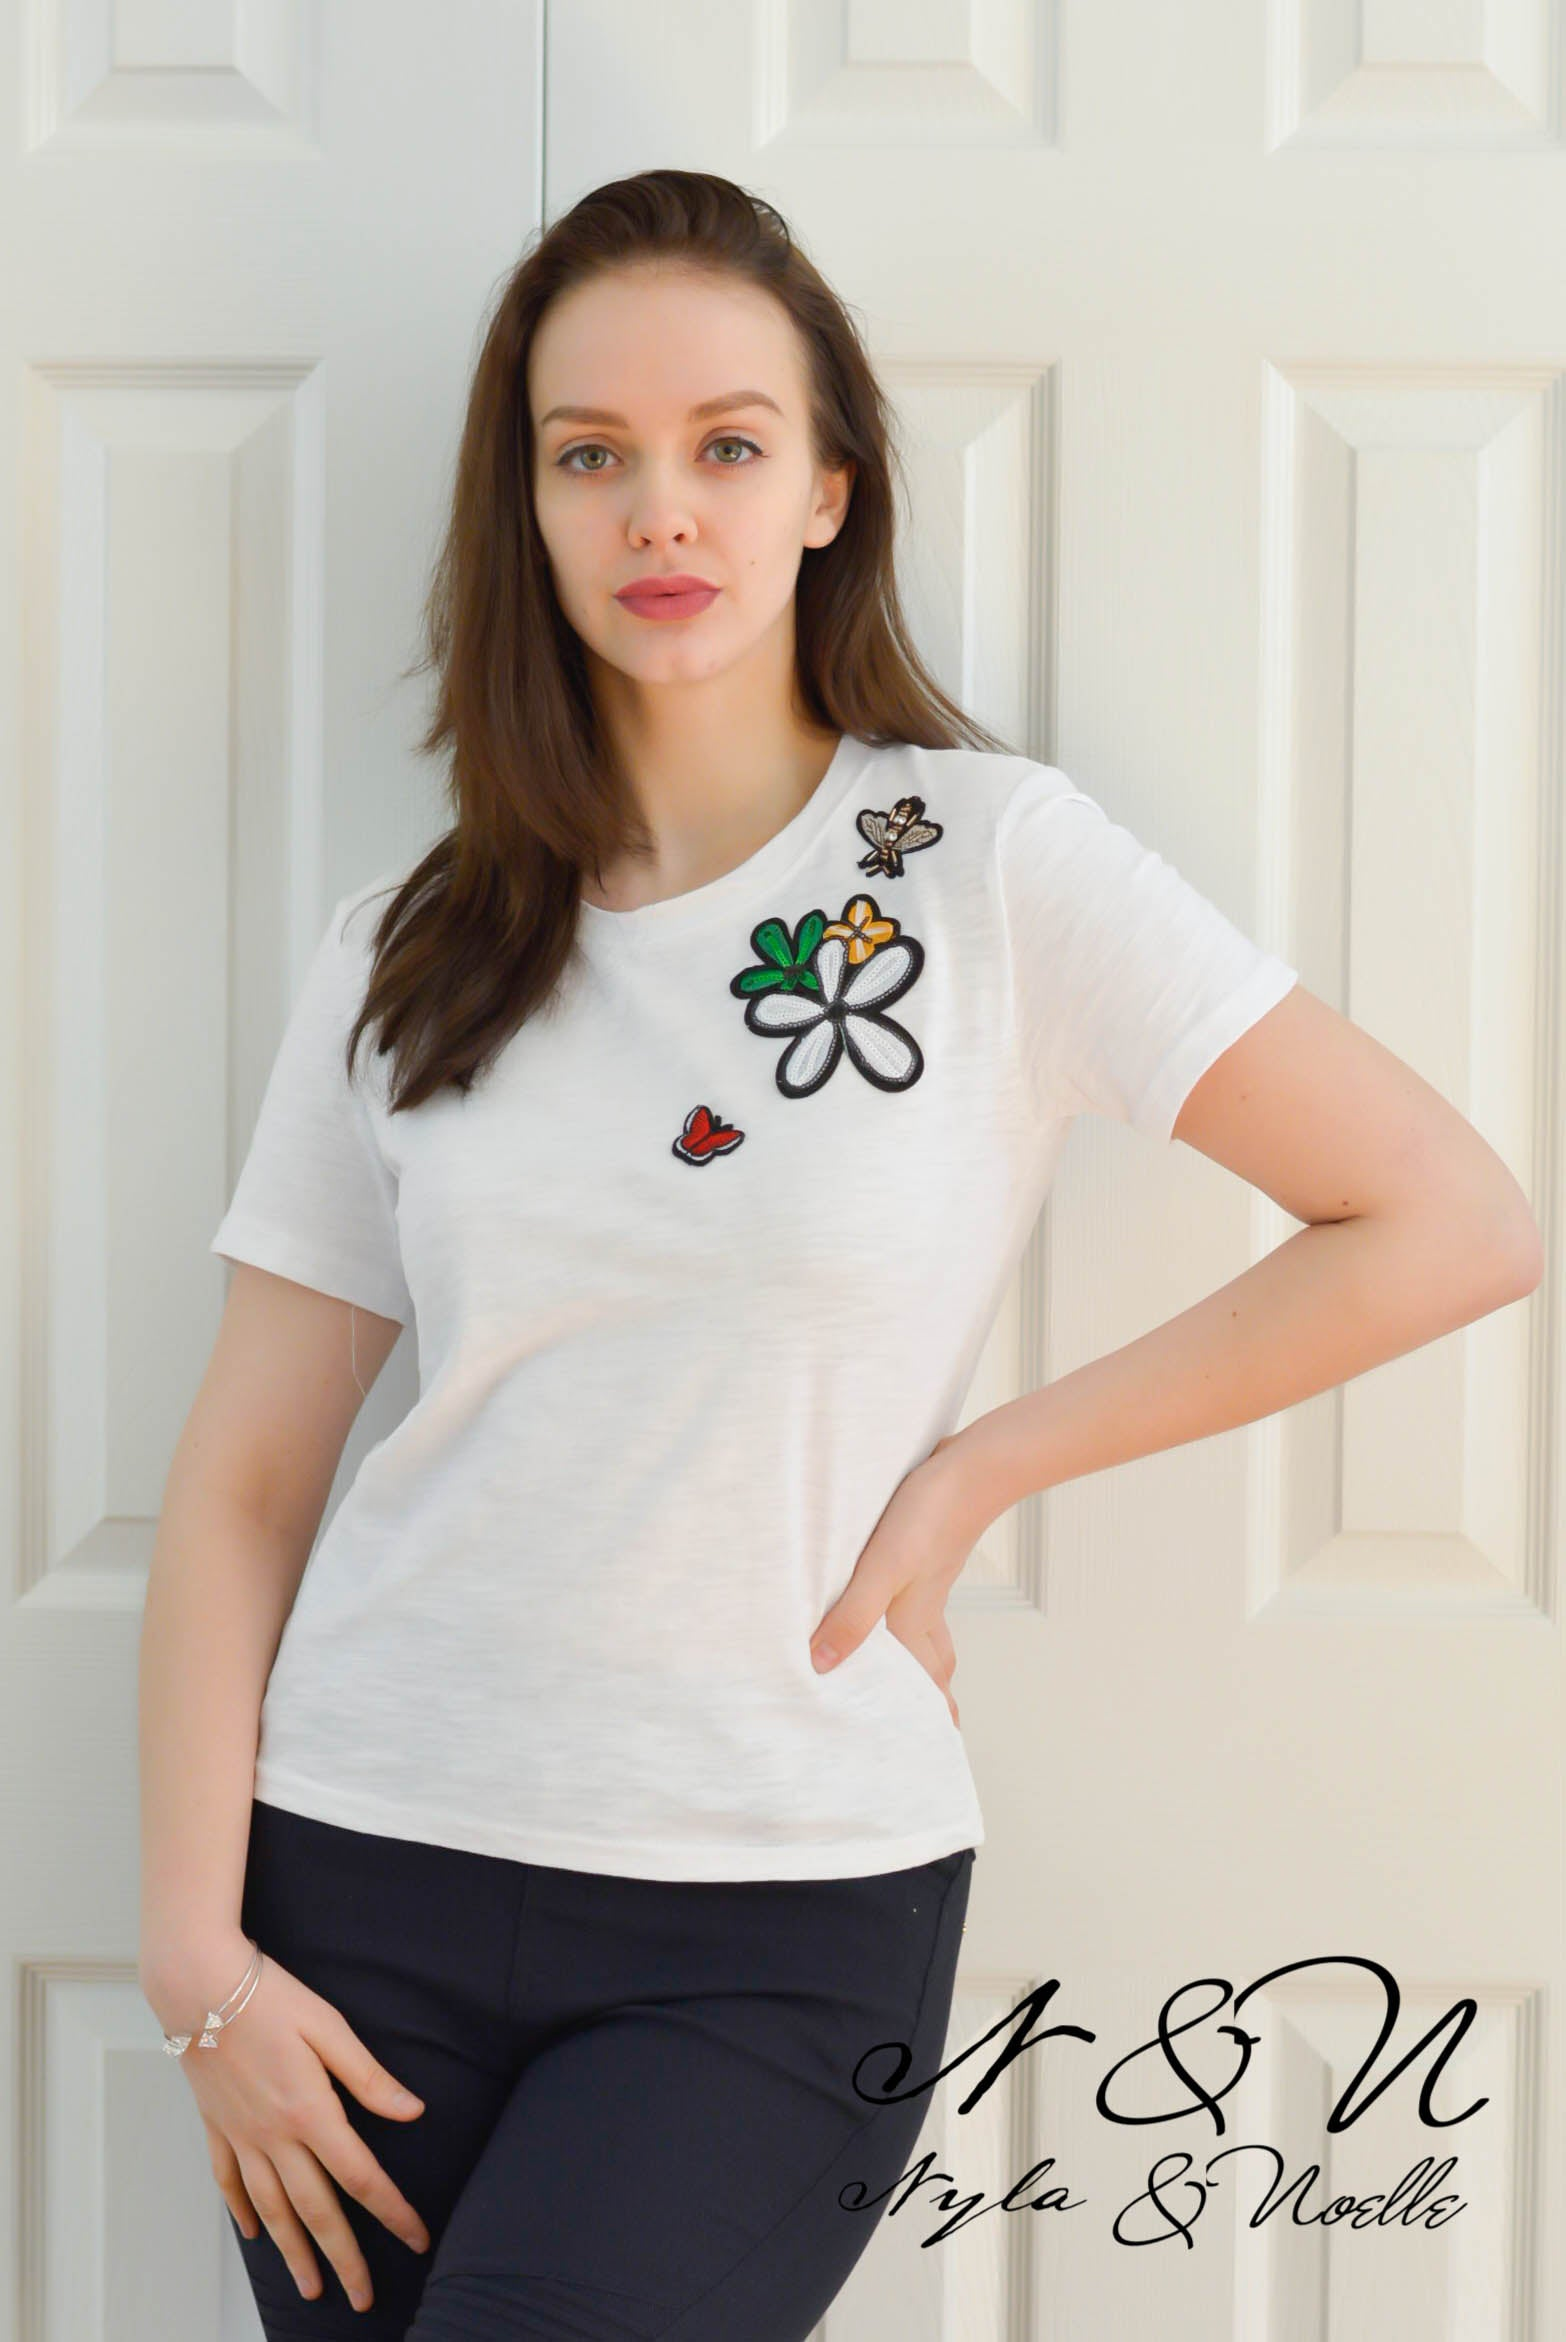 QUEEN BEE -  Vintage Burn Out Cotton Tee with Jeweled Bee Patch